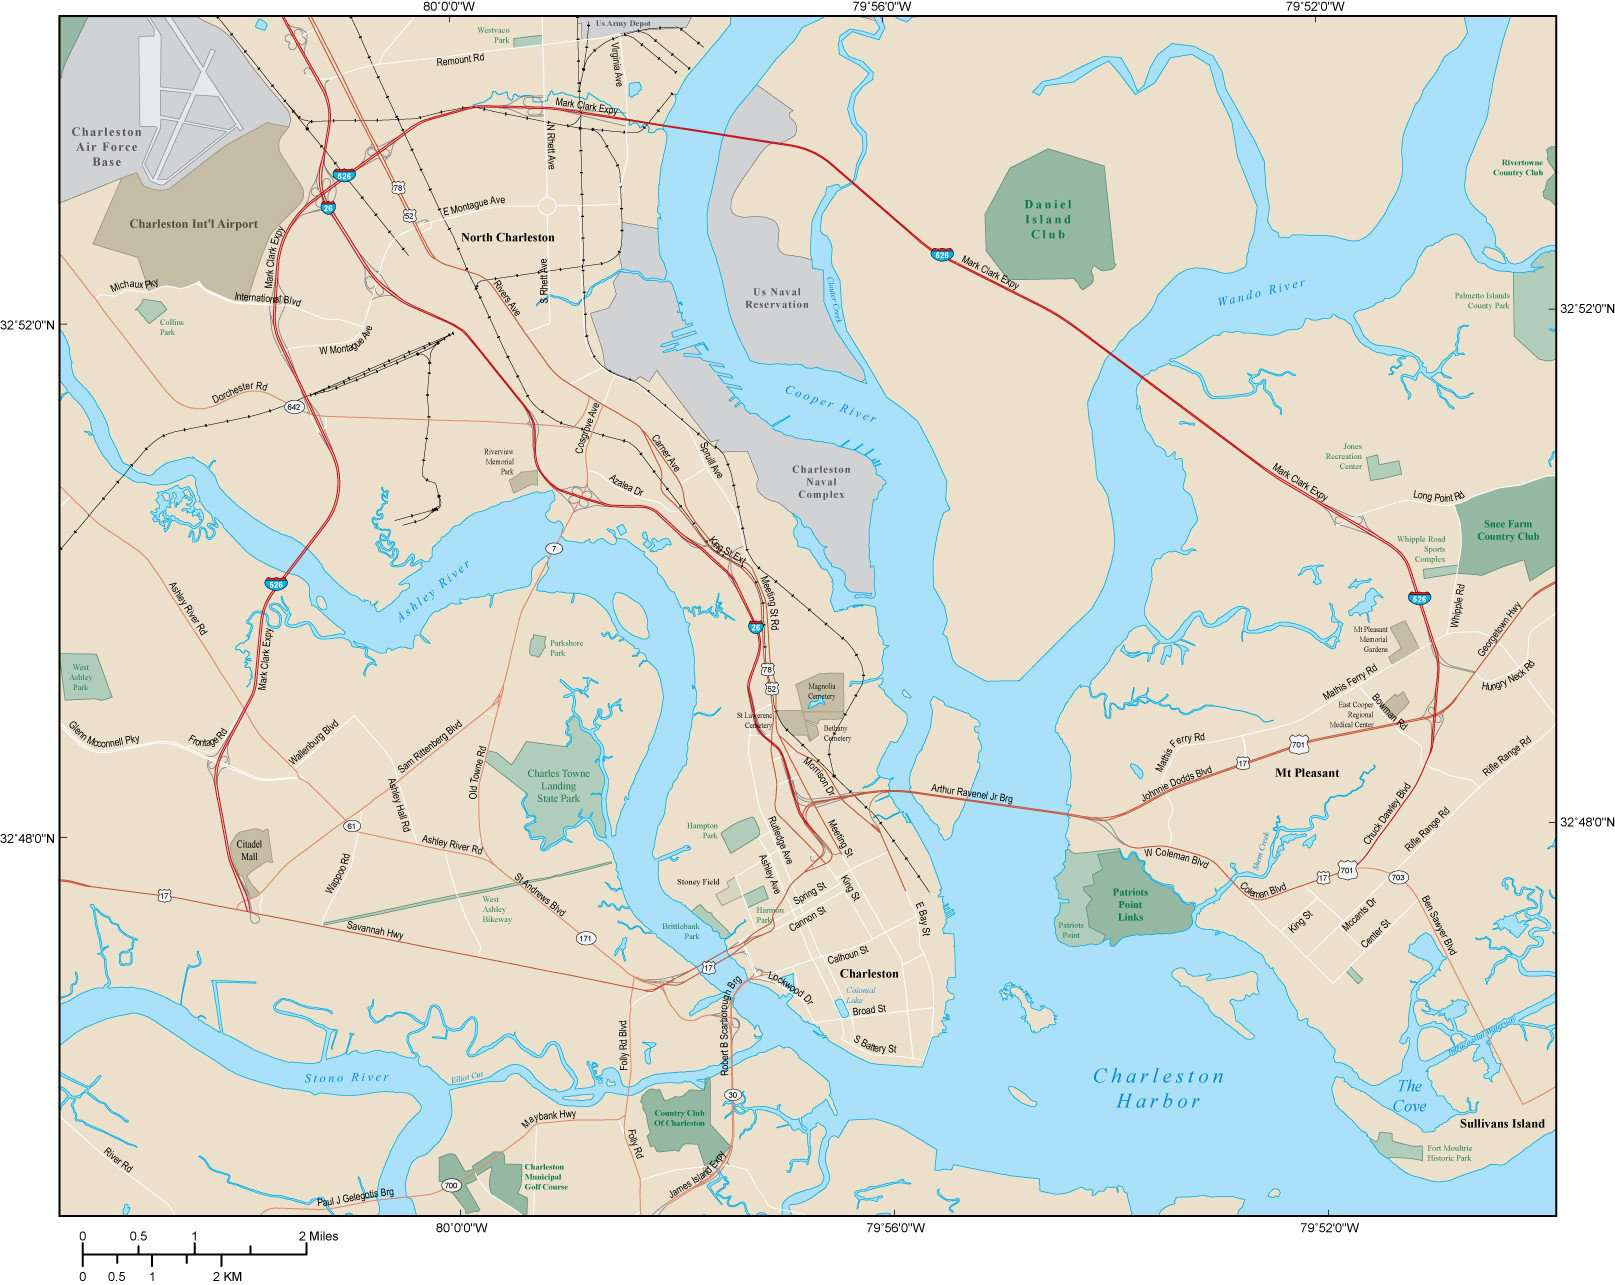 Charleston Map Adobe Illustrator vector format